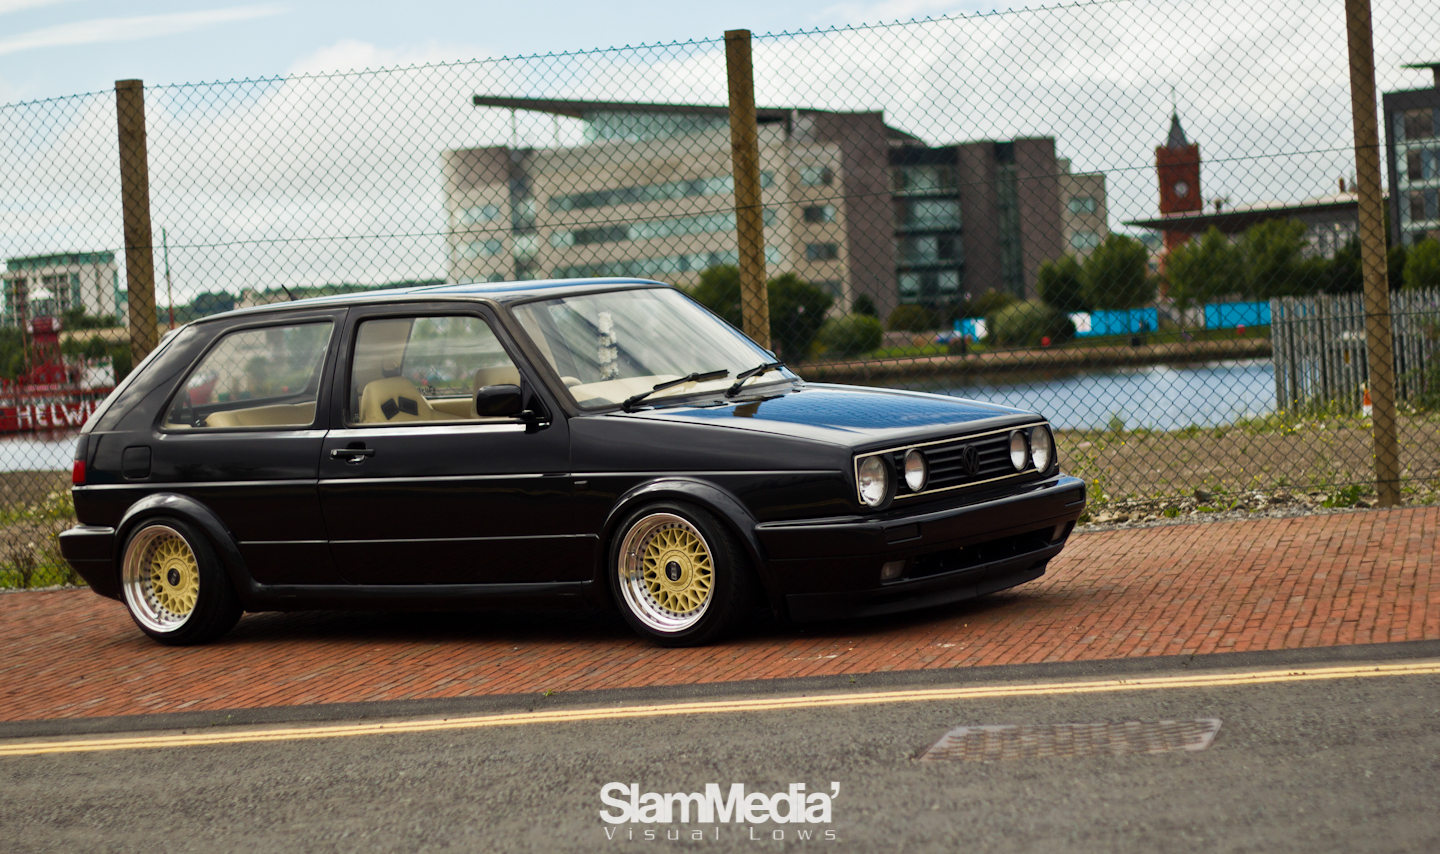 sucksqueezebangblow supercharged mkii golf vr6. Black Bedroom Furniture Sets. Home Design Ideas